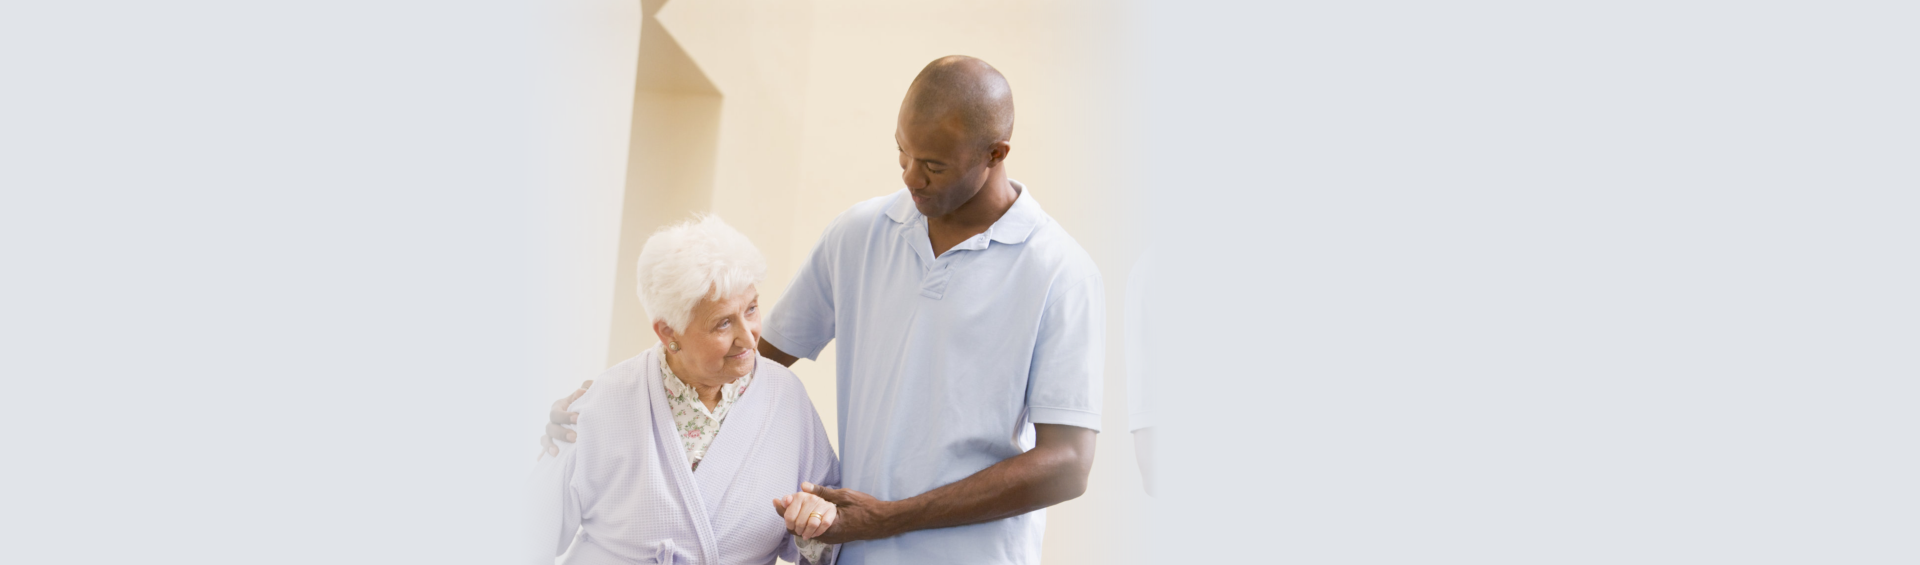 caregiver supporting an elderly woman while walking